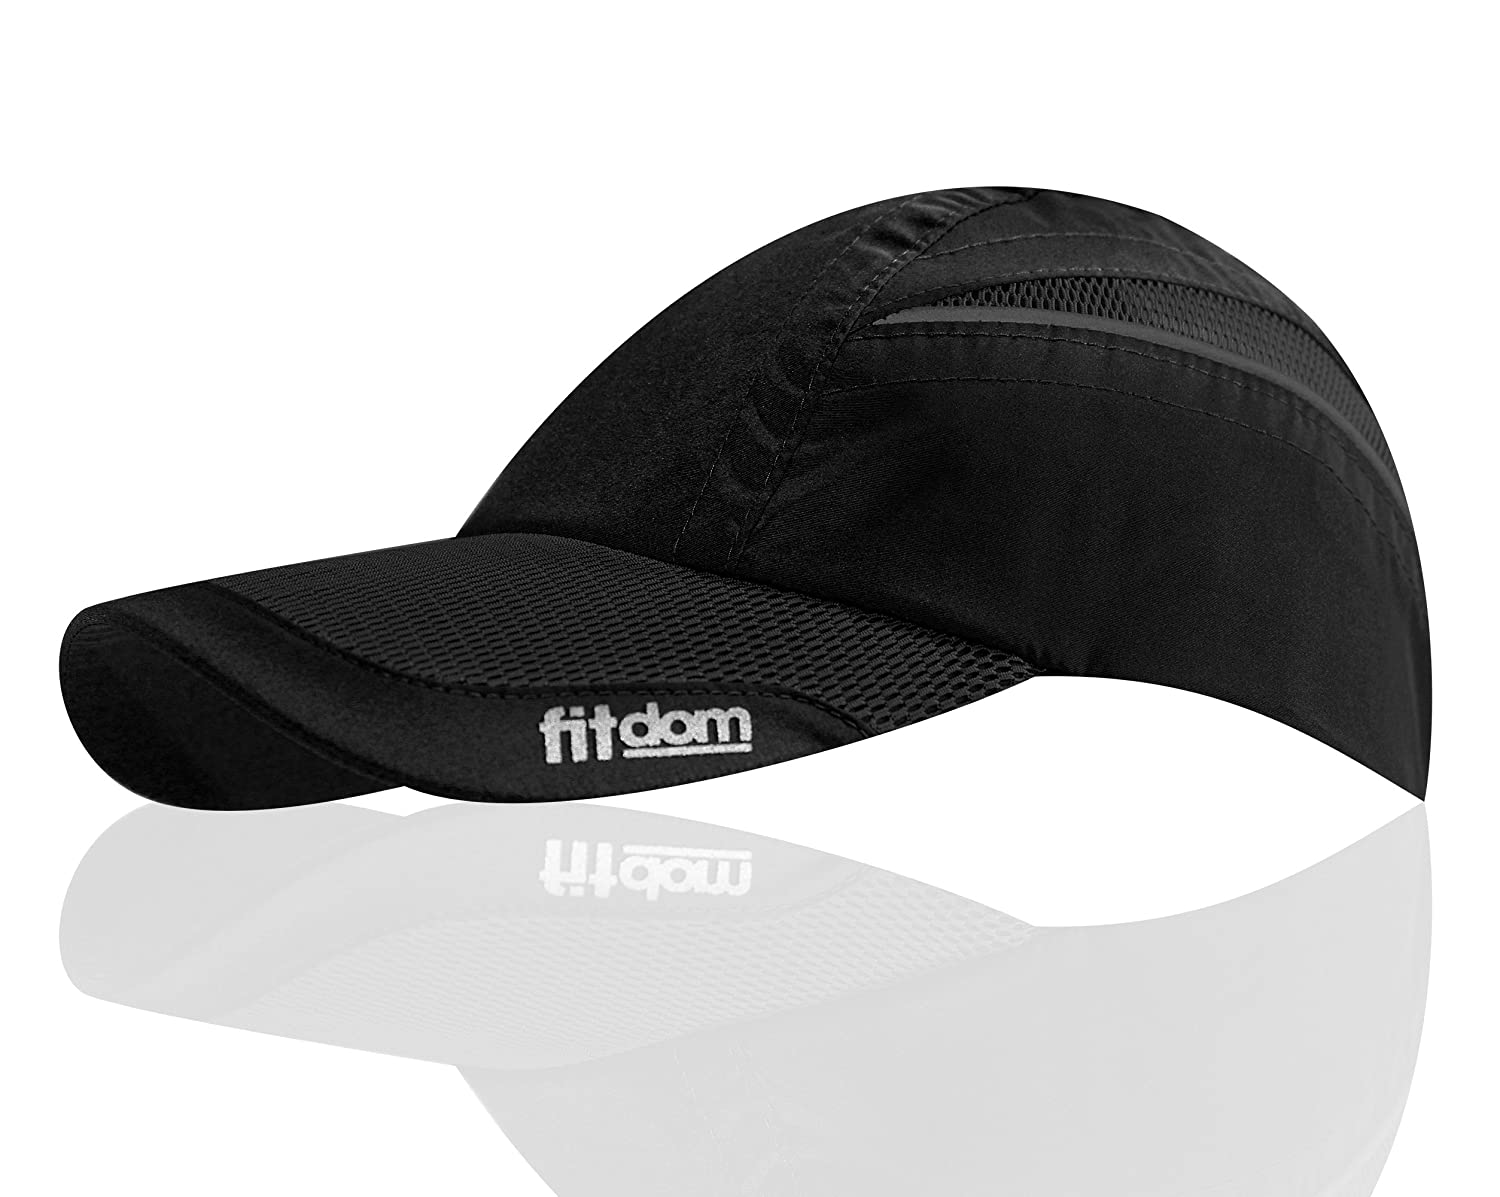 e2eed52a8df Amazon.com  Fitdom Lightweight Sports Cap for Men and Women